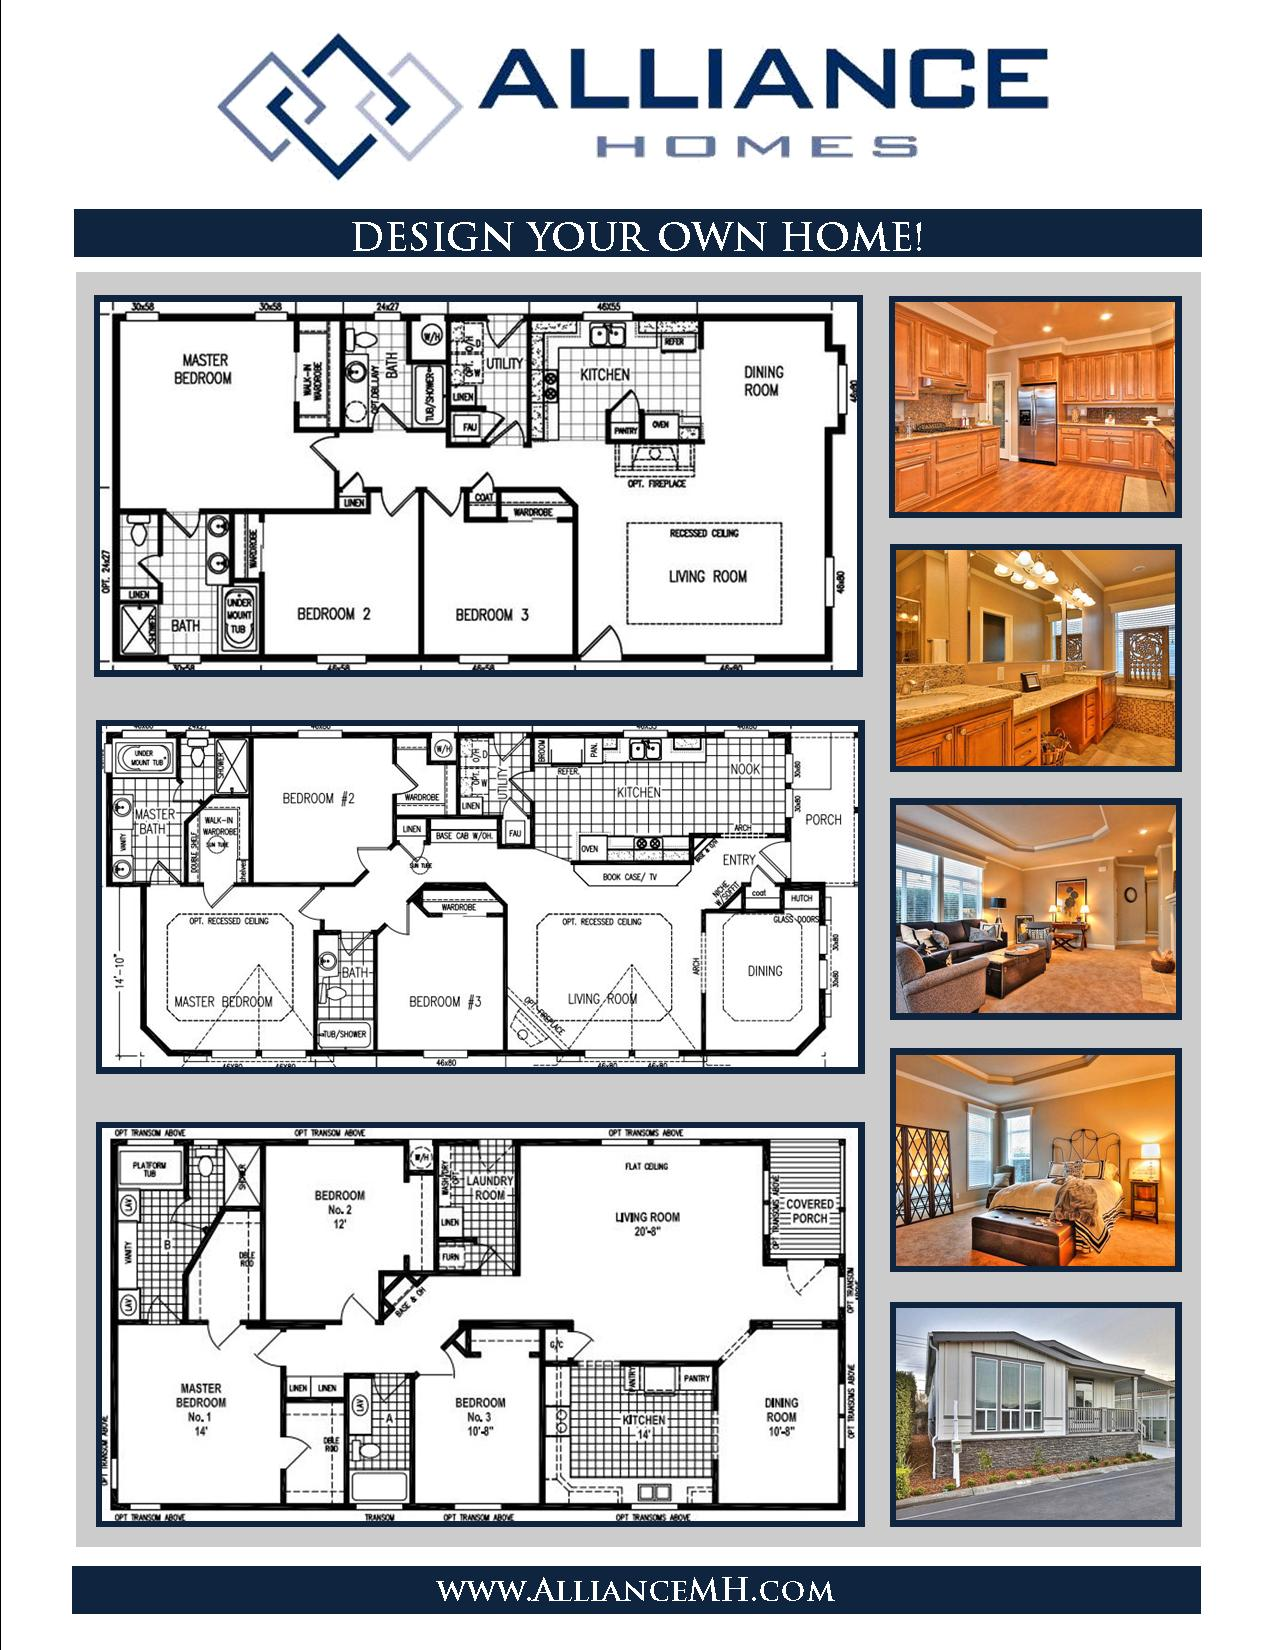 Mobile Home Design Your Own